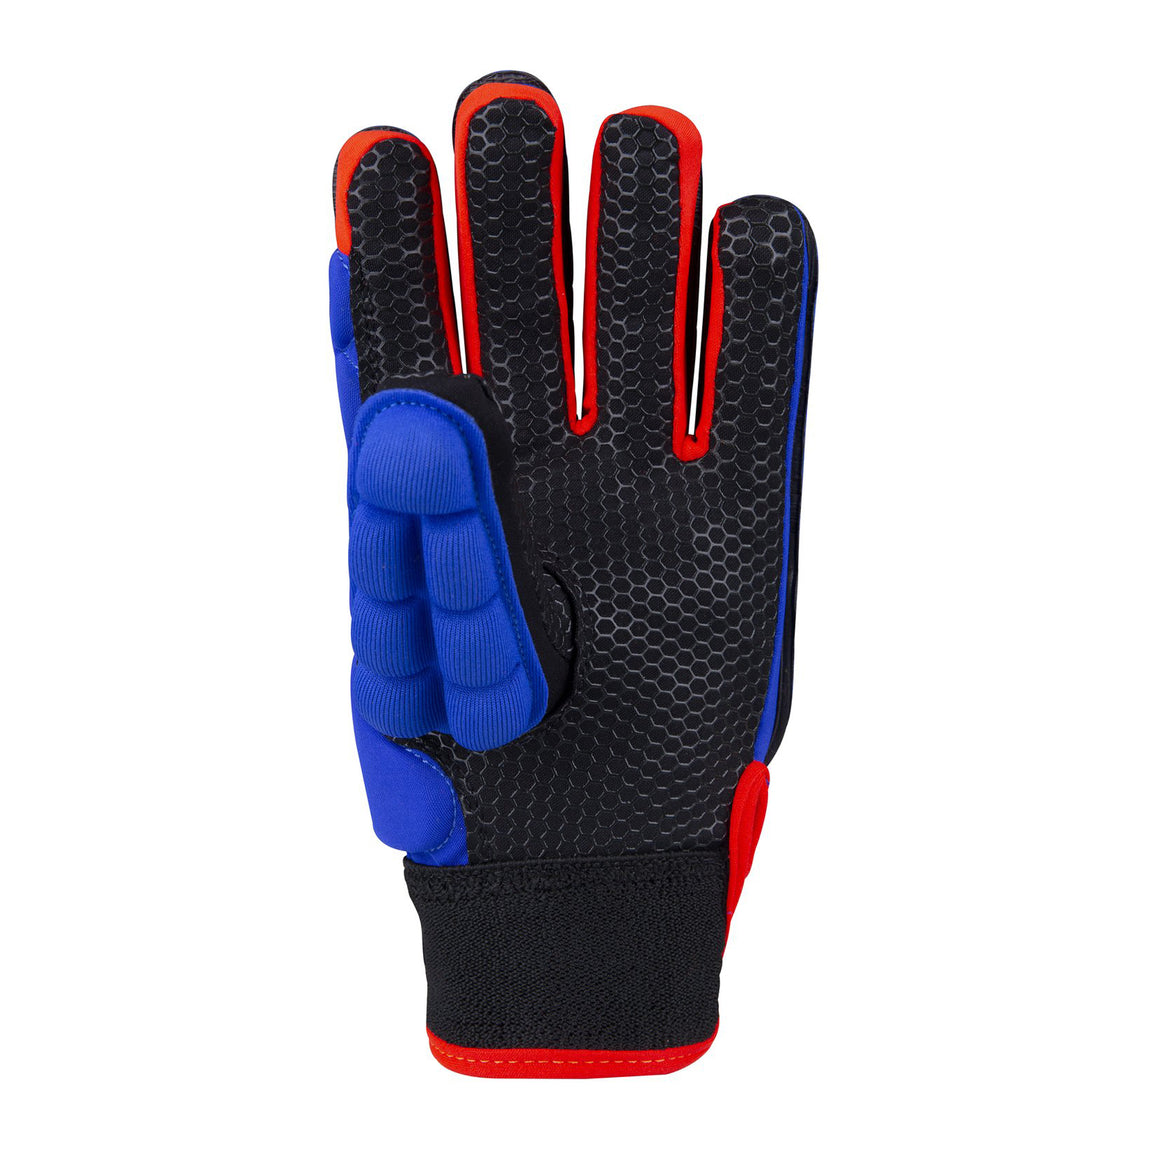 International Pro Glove L/H in Navy & Red